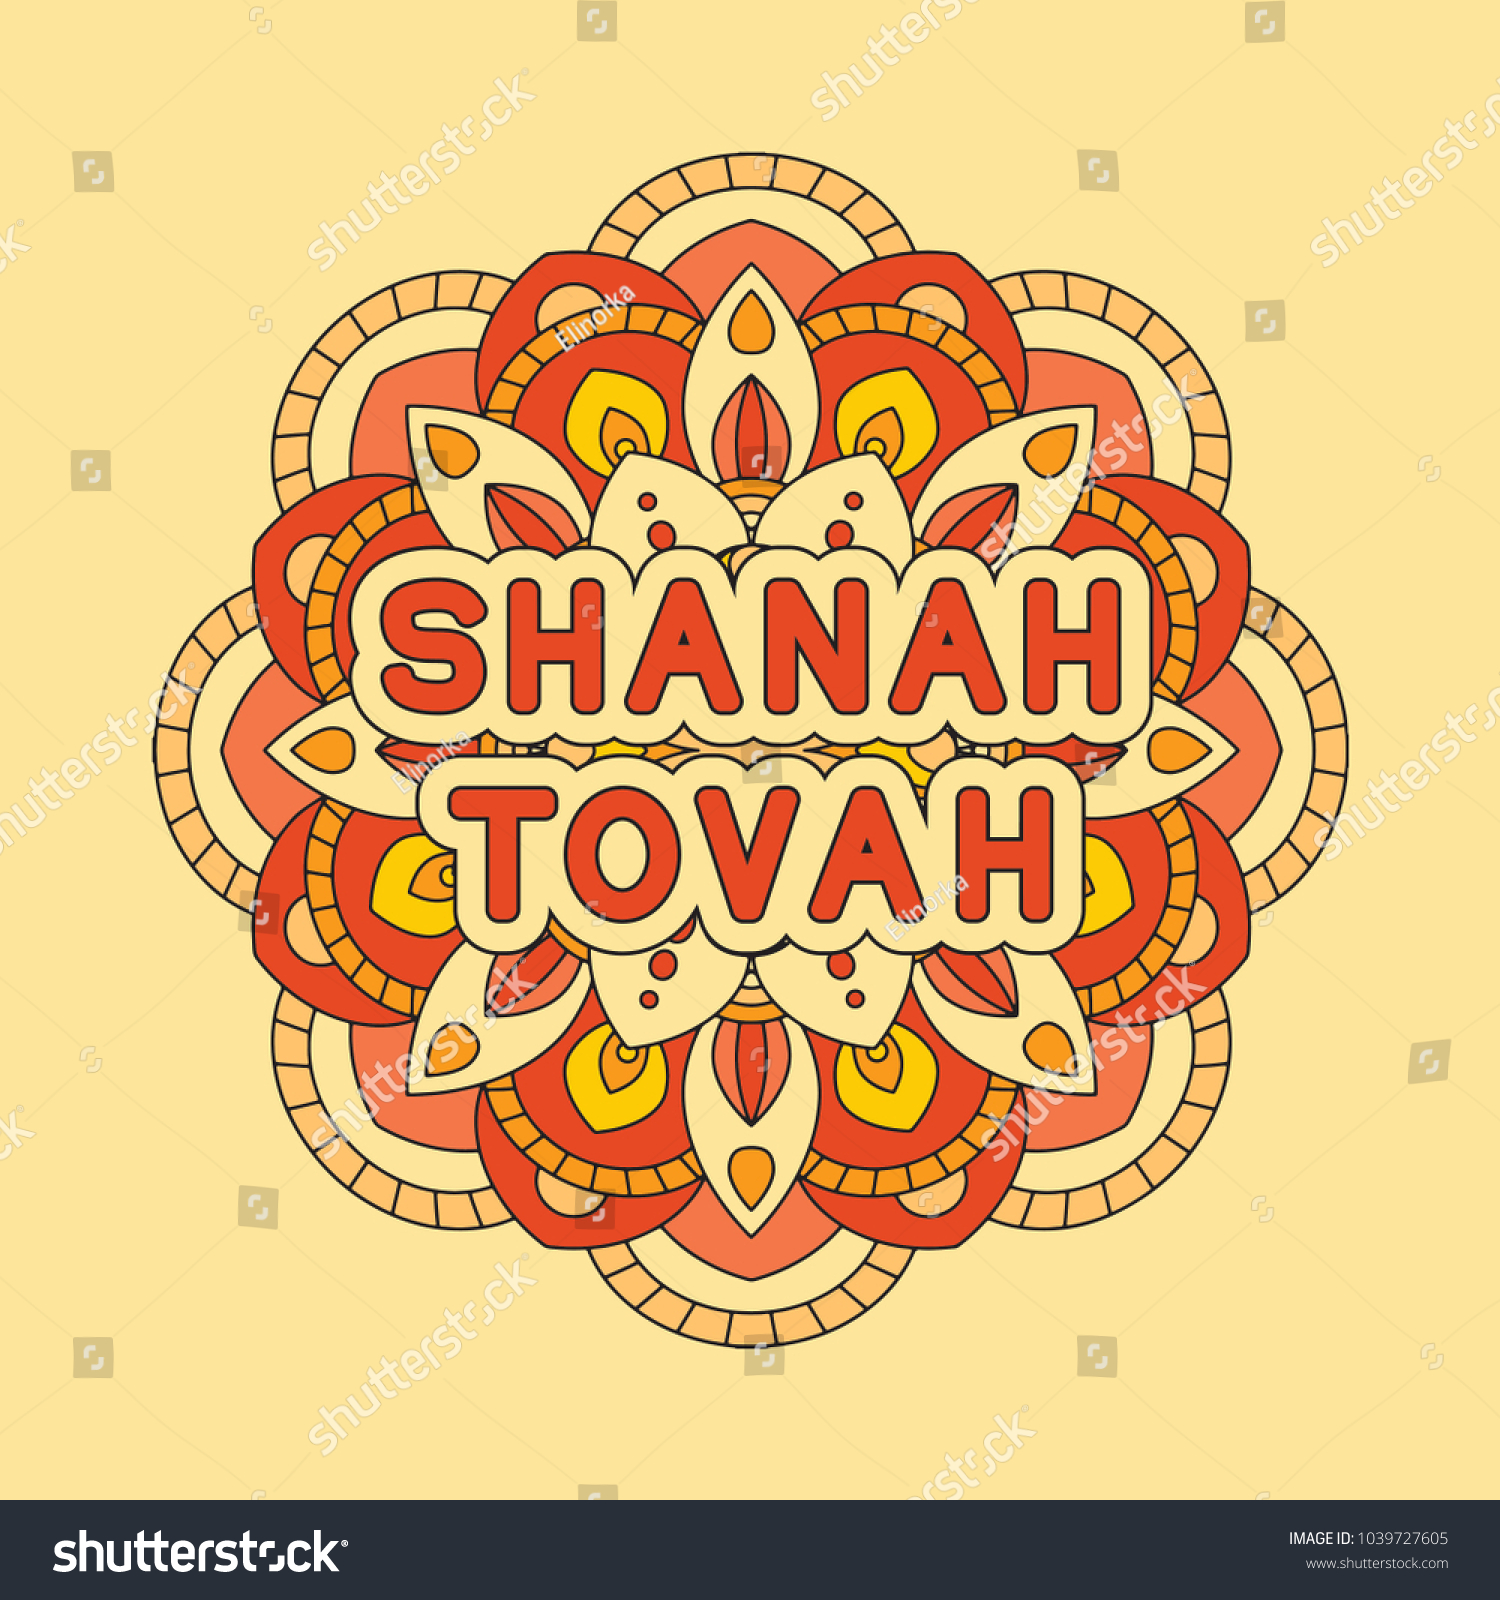 Rosh hashanah jewish new year greeting stock vector 1039727605 rosh hashanah jewish new year greeting card design with abstract ornament greeting text shanah kristyandbryce Choice Image